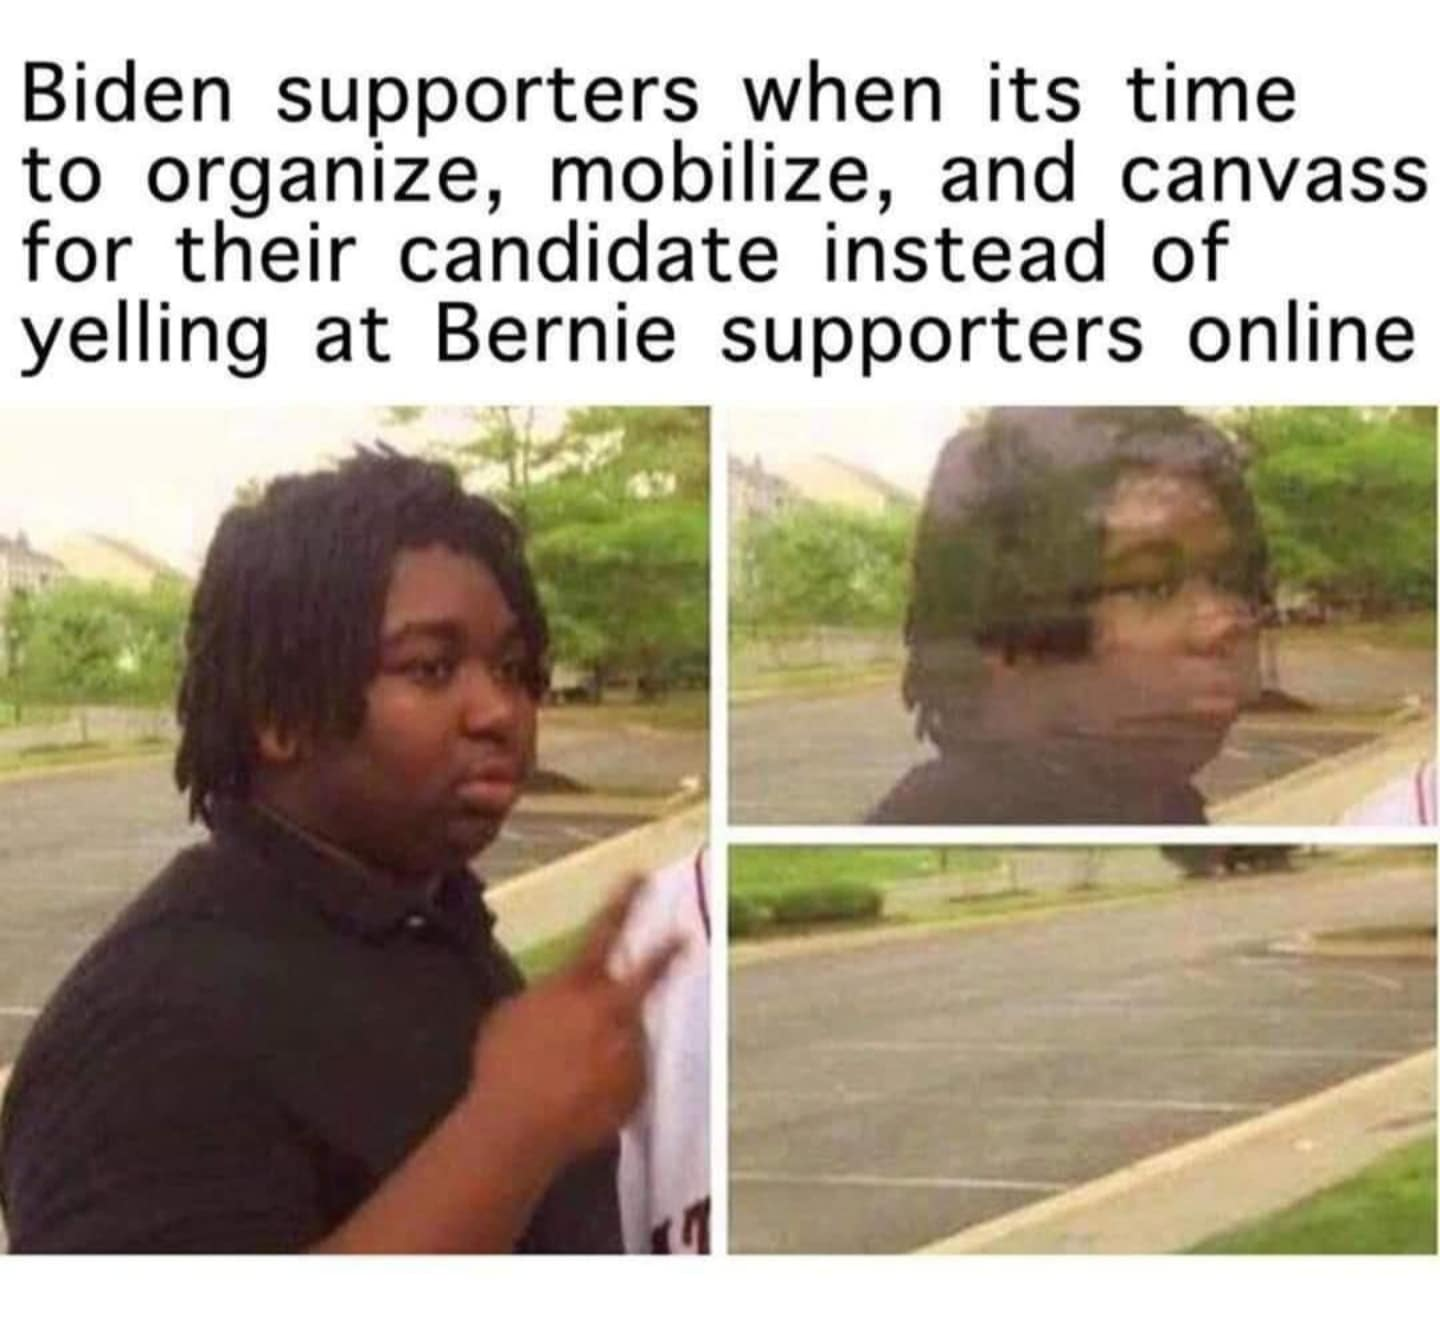 Political, Trump, DNC, Bernie Political Memes Political, Trump, DNC, Bernie text: Biden supporters when its time to organize, mobilize, and canvass for their candidate instead of yelling at Bernie supporters online